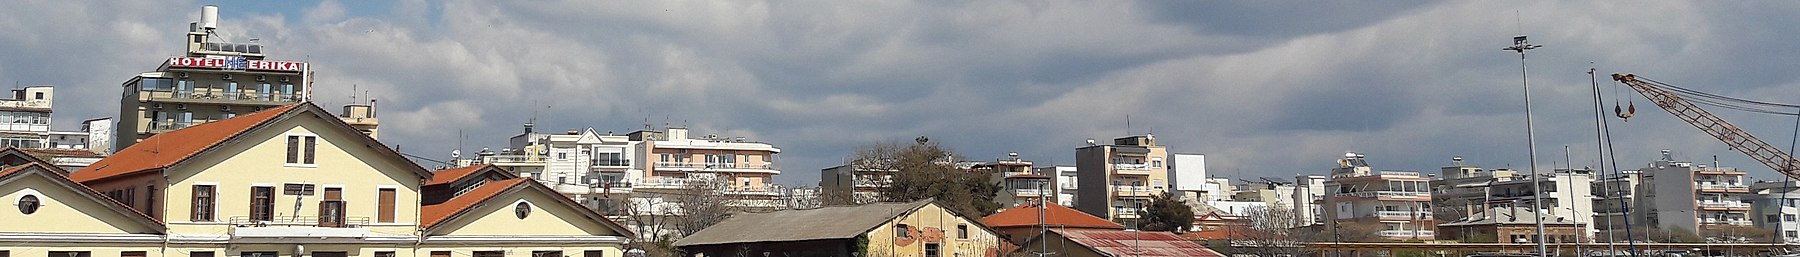 Alexandroupolis Port (April 2017) (cropped).jpg